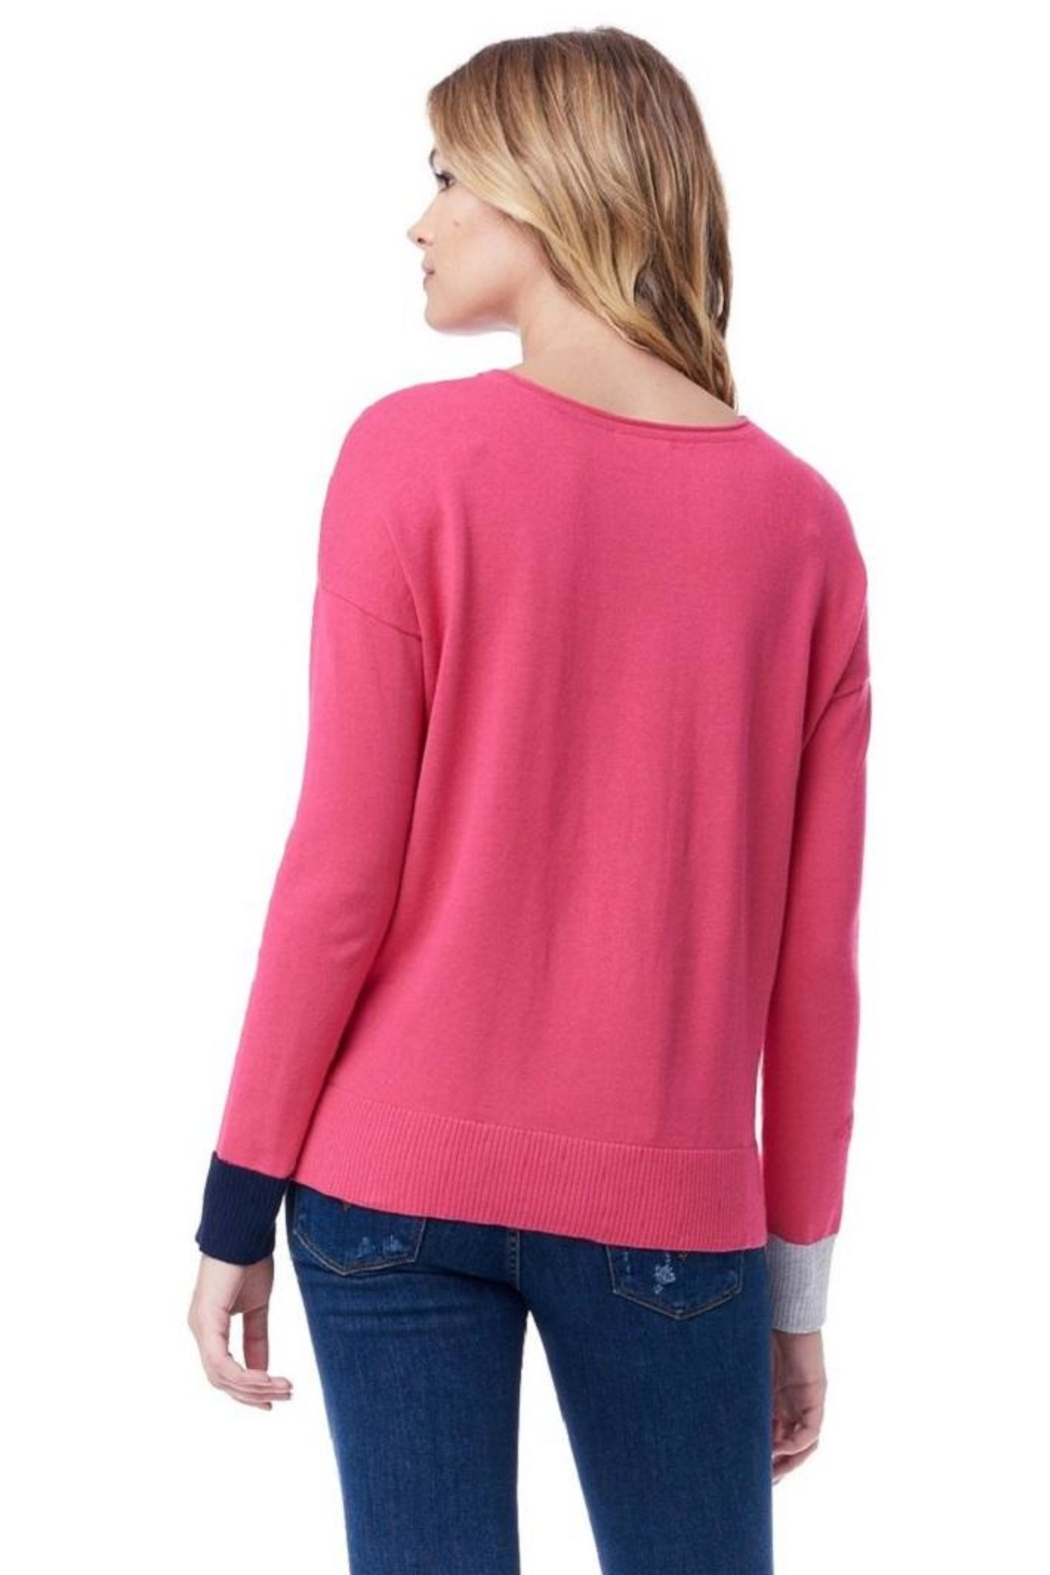 Lisa Todd Good Vibrations Sweater - Front Full Image